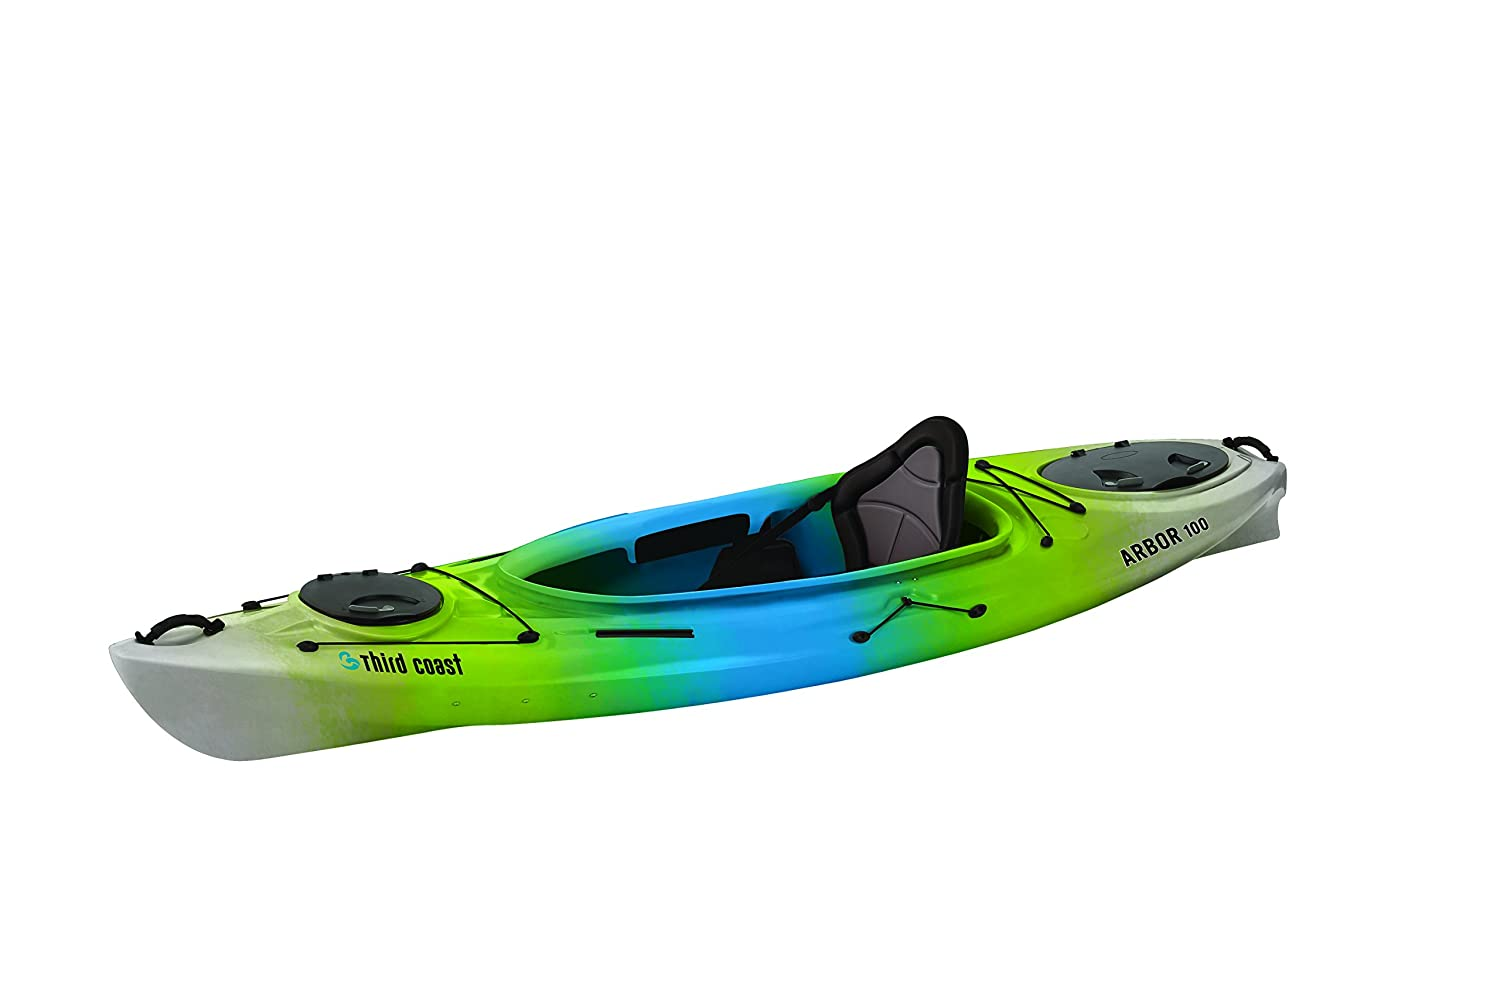 Third Coast Arbor 100 Sit in Recreational Kayak Citron Blue White